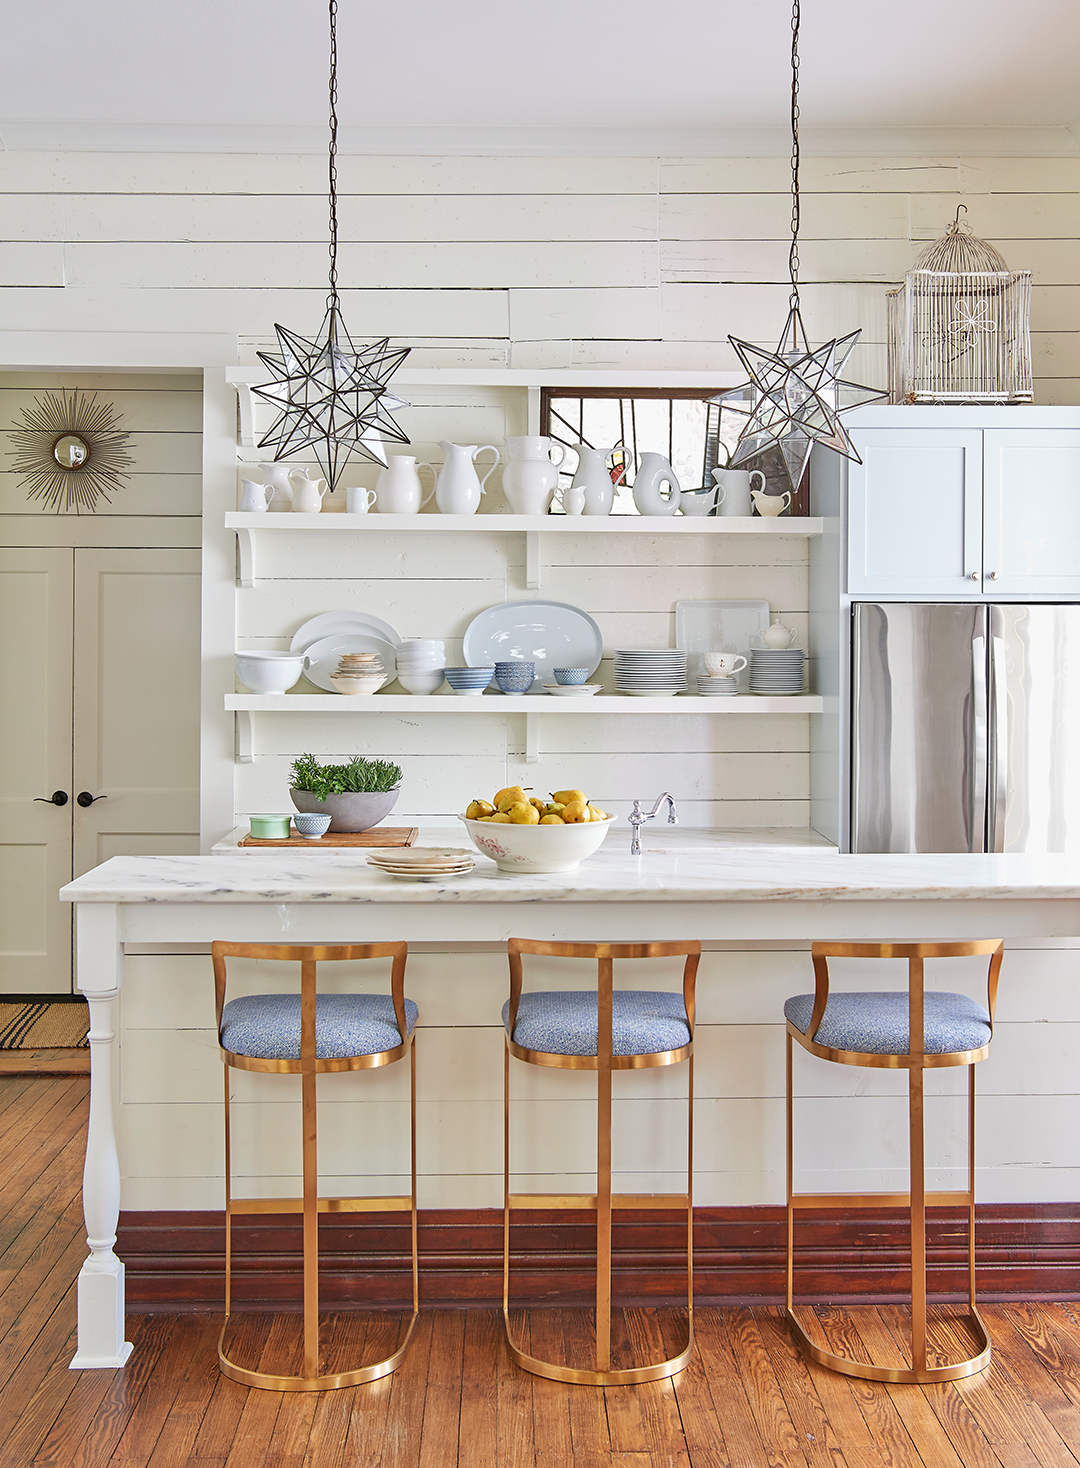 kitchen island with stools and hanging lights